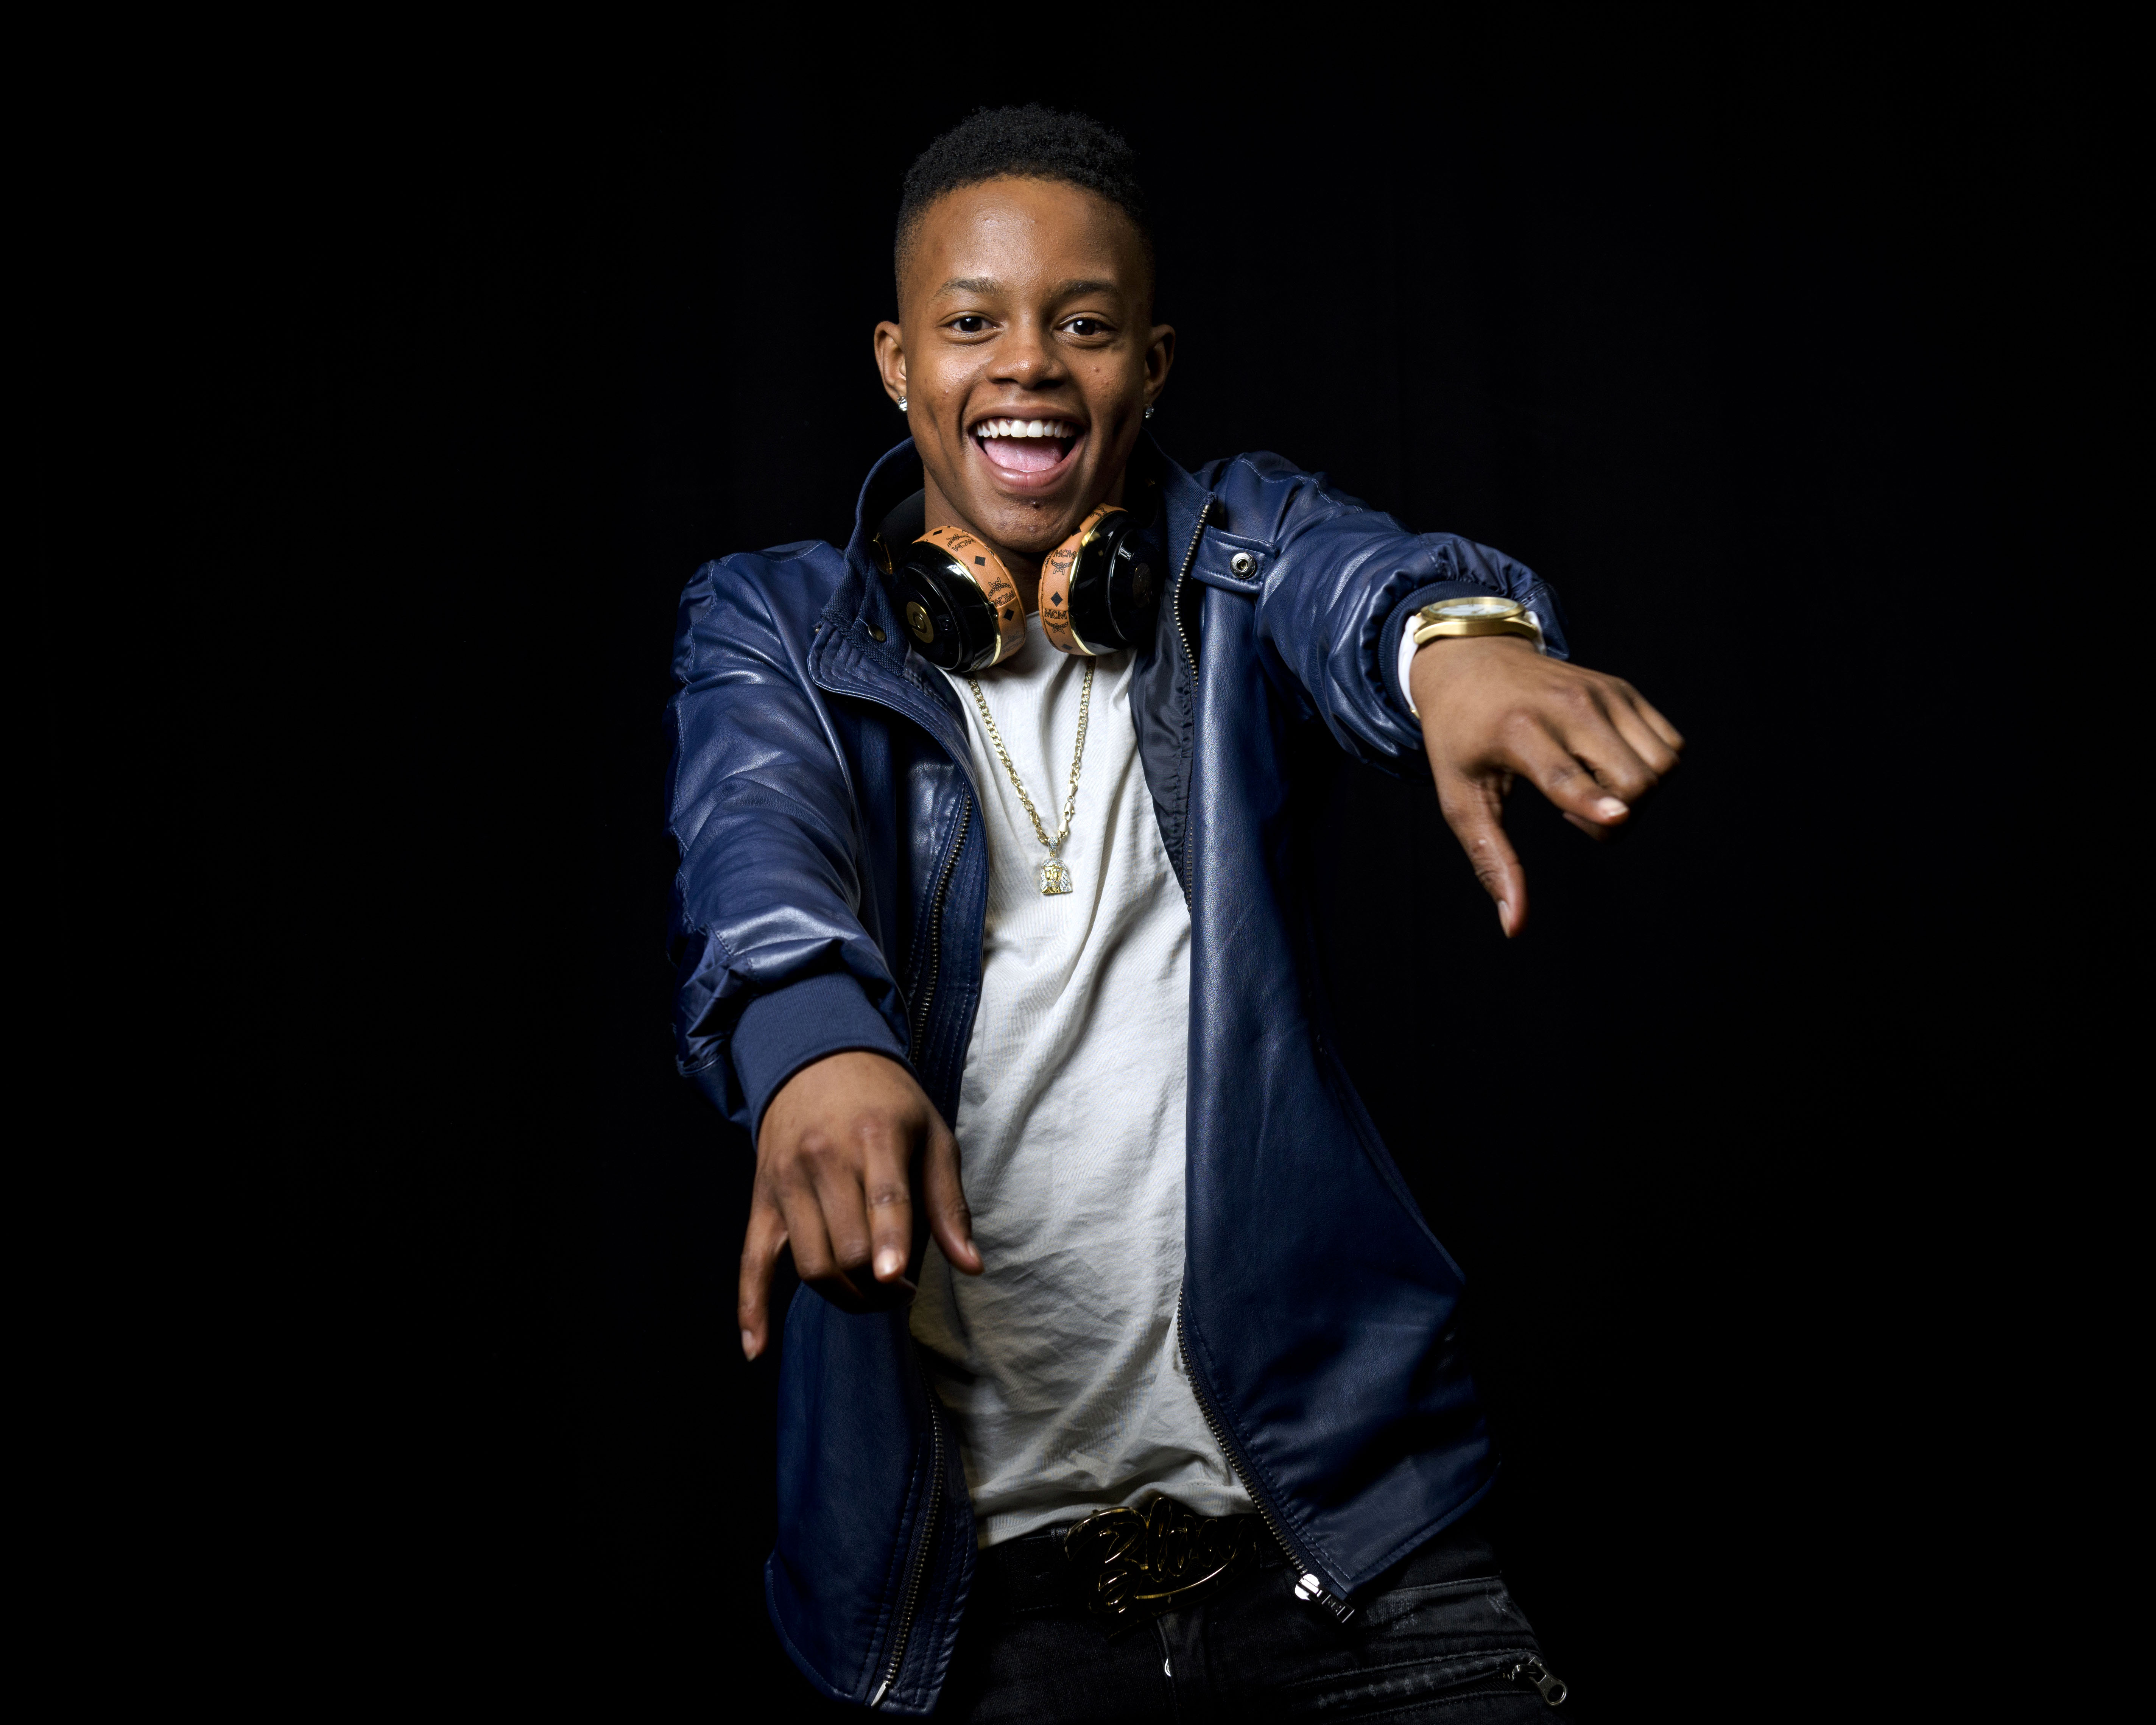 Rapper Silento, 17, poses for a portrait in New York, July 21, 2015.